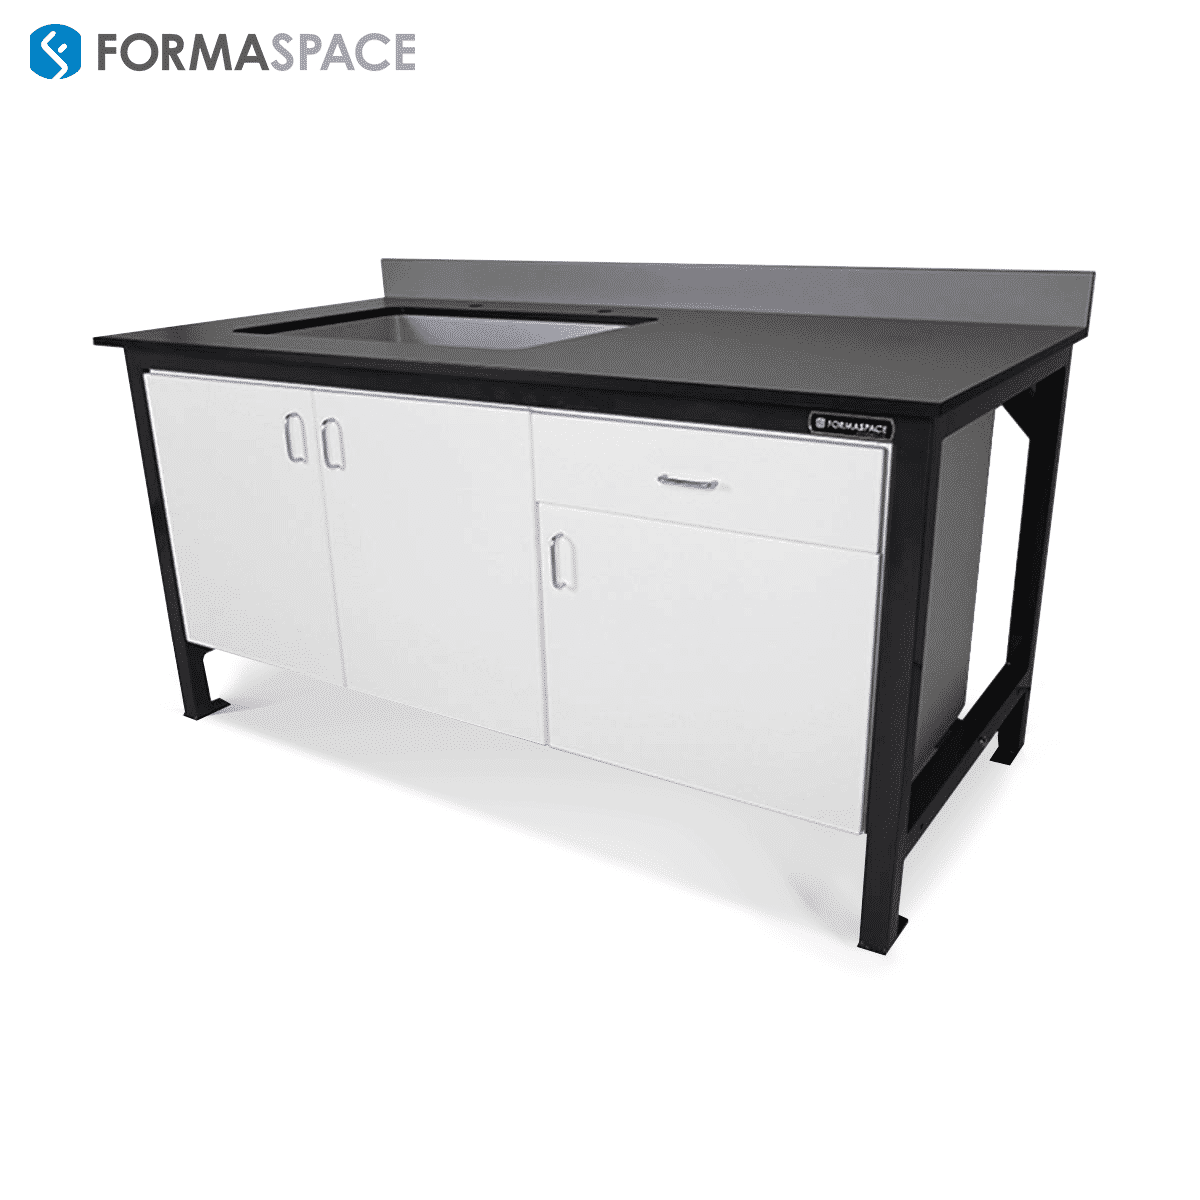 Basix Workbench with White Melamine Cabinets and Gray Phenolic Top